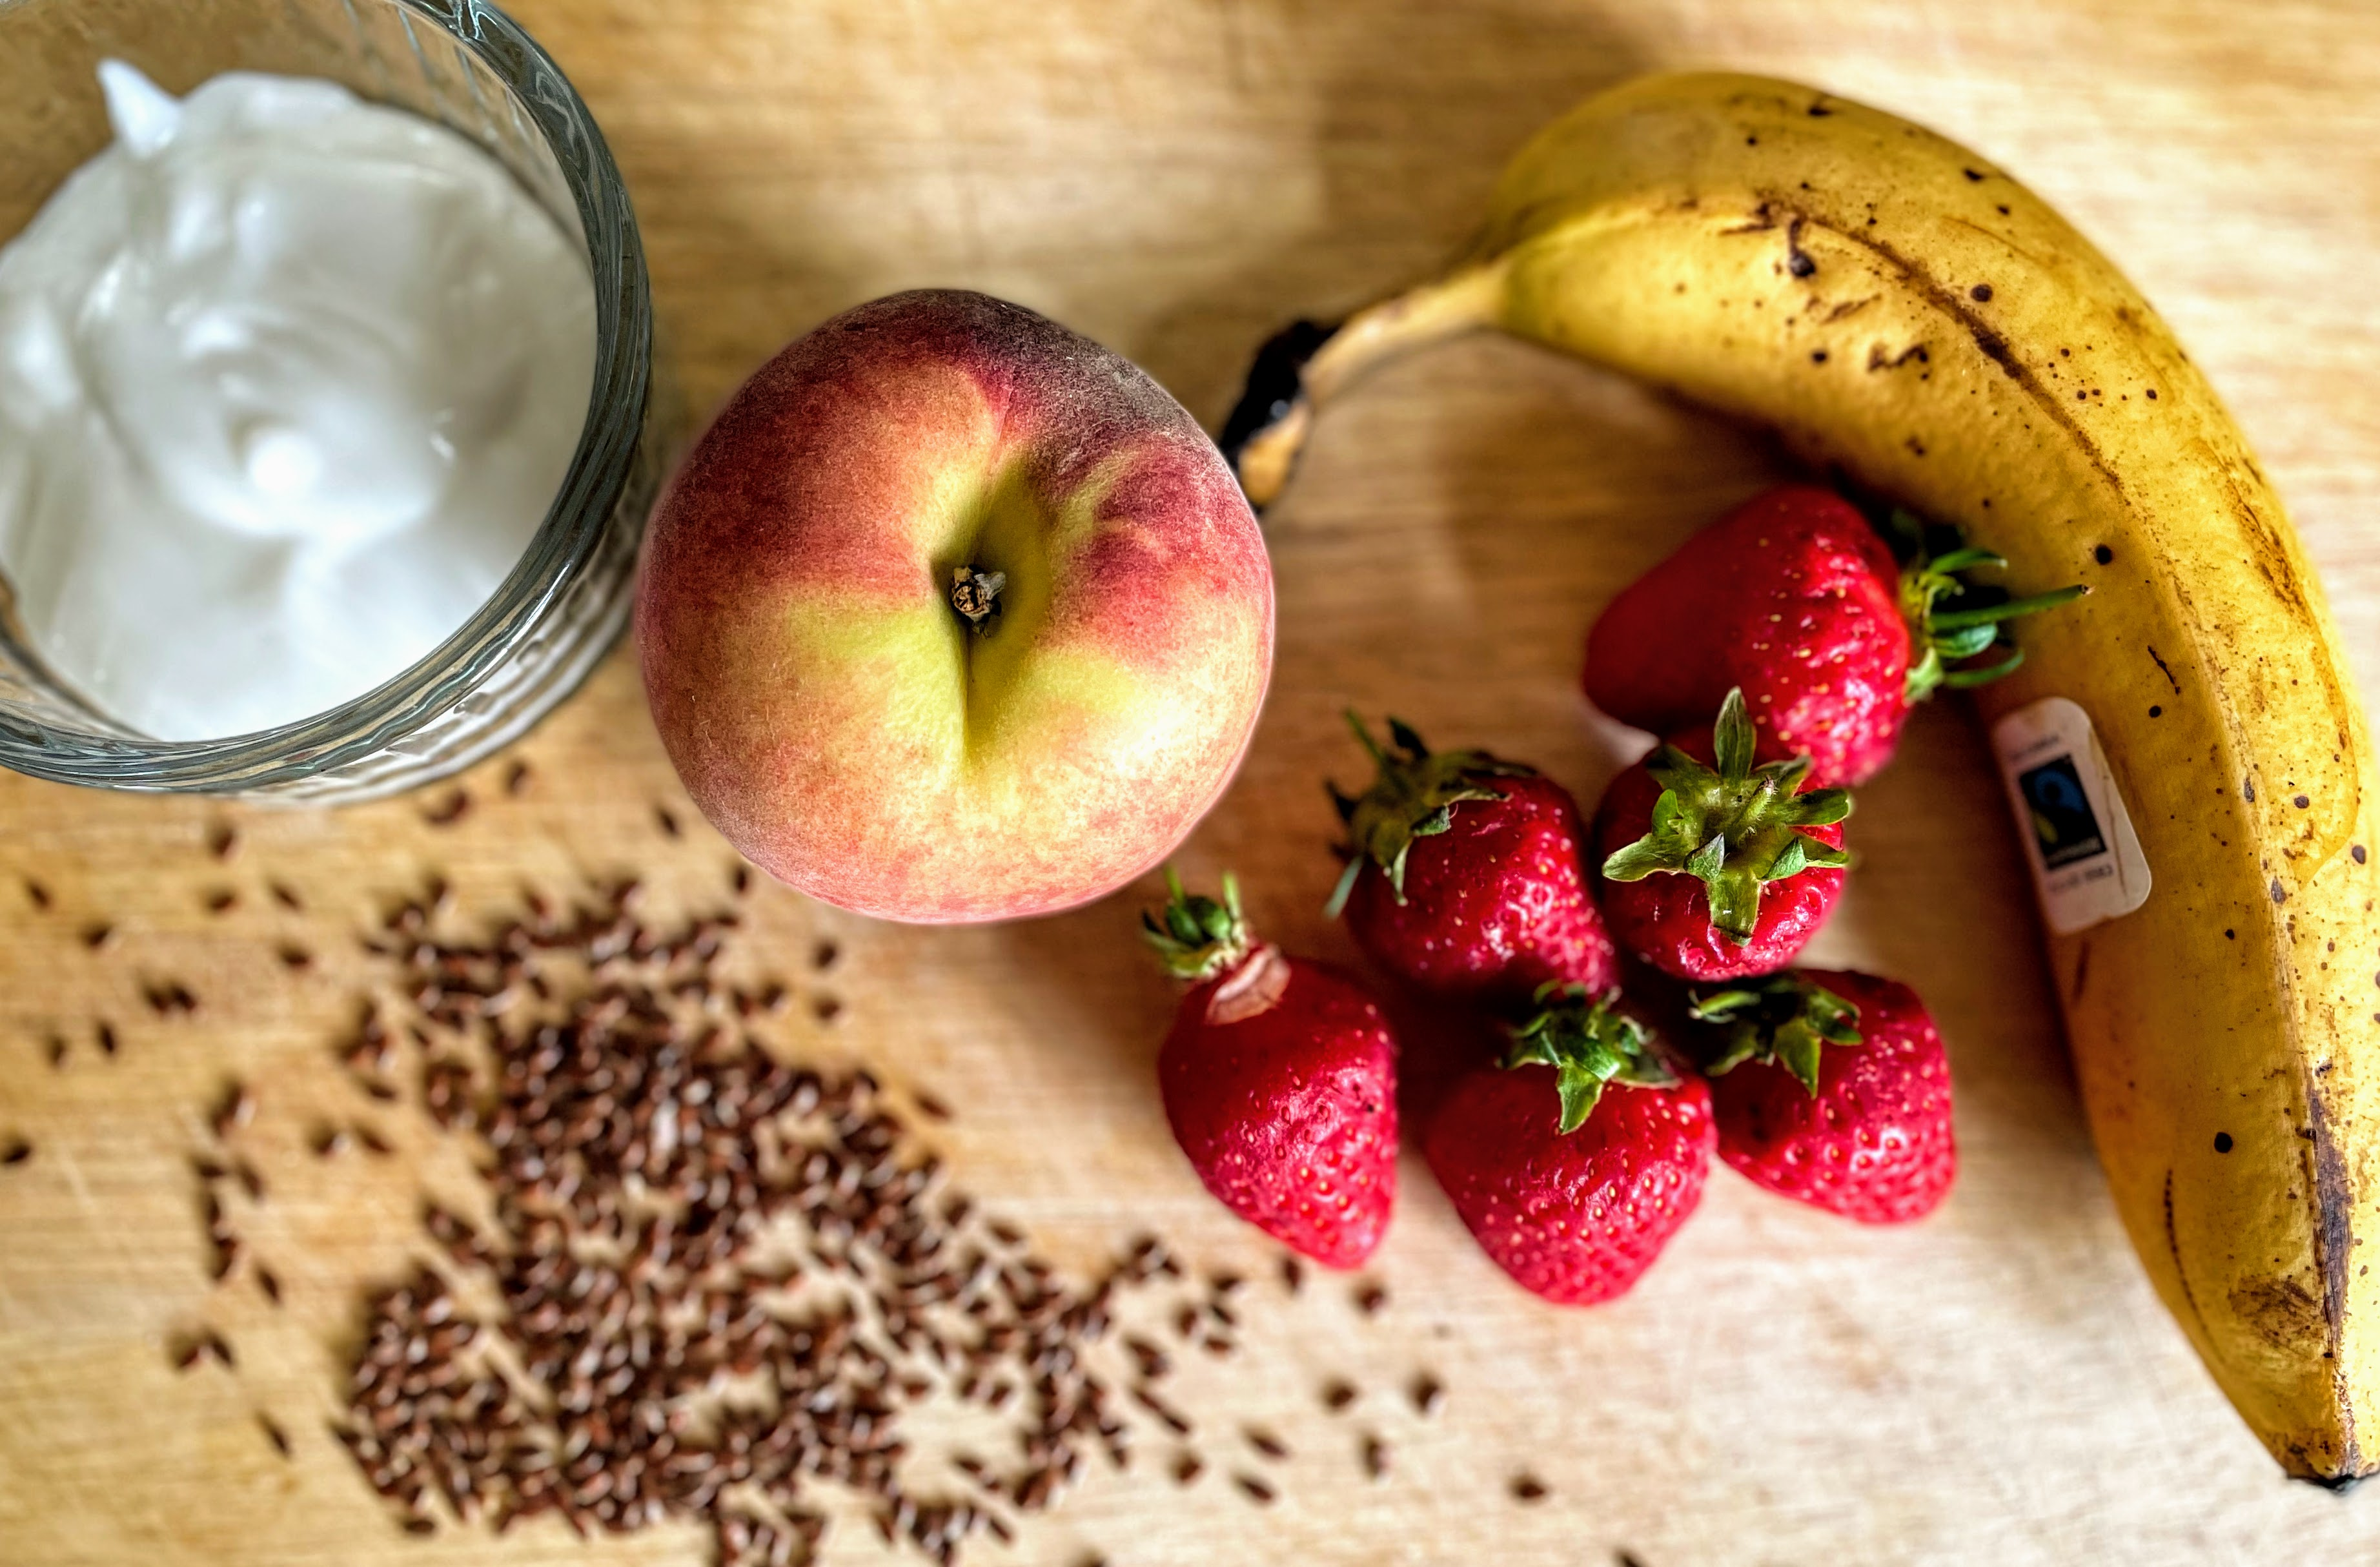 A chopping board with some of the ingredients - an overripe banana, a handful of strawberries, a peach, some coconut yogurt and a scattering of flax seeds.